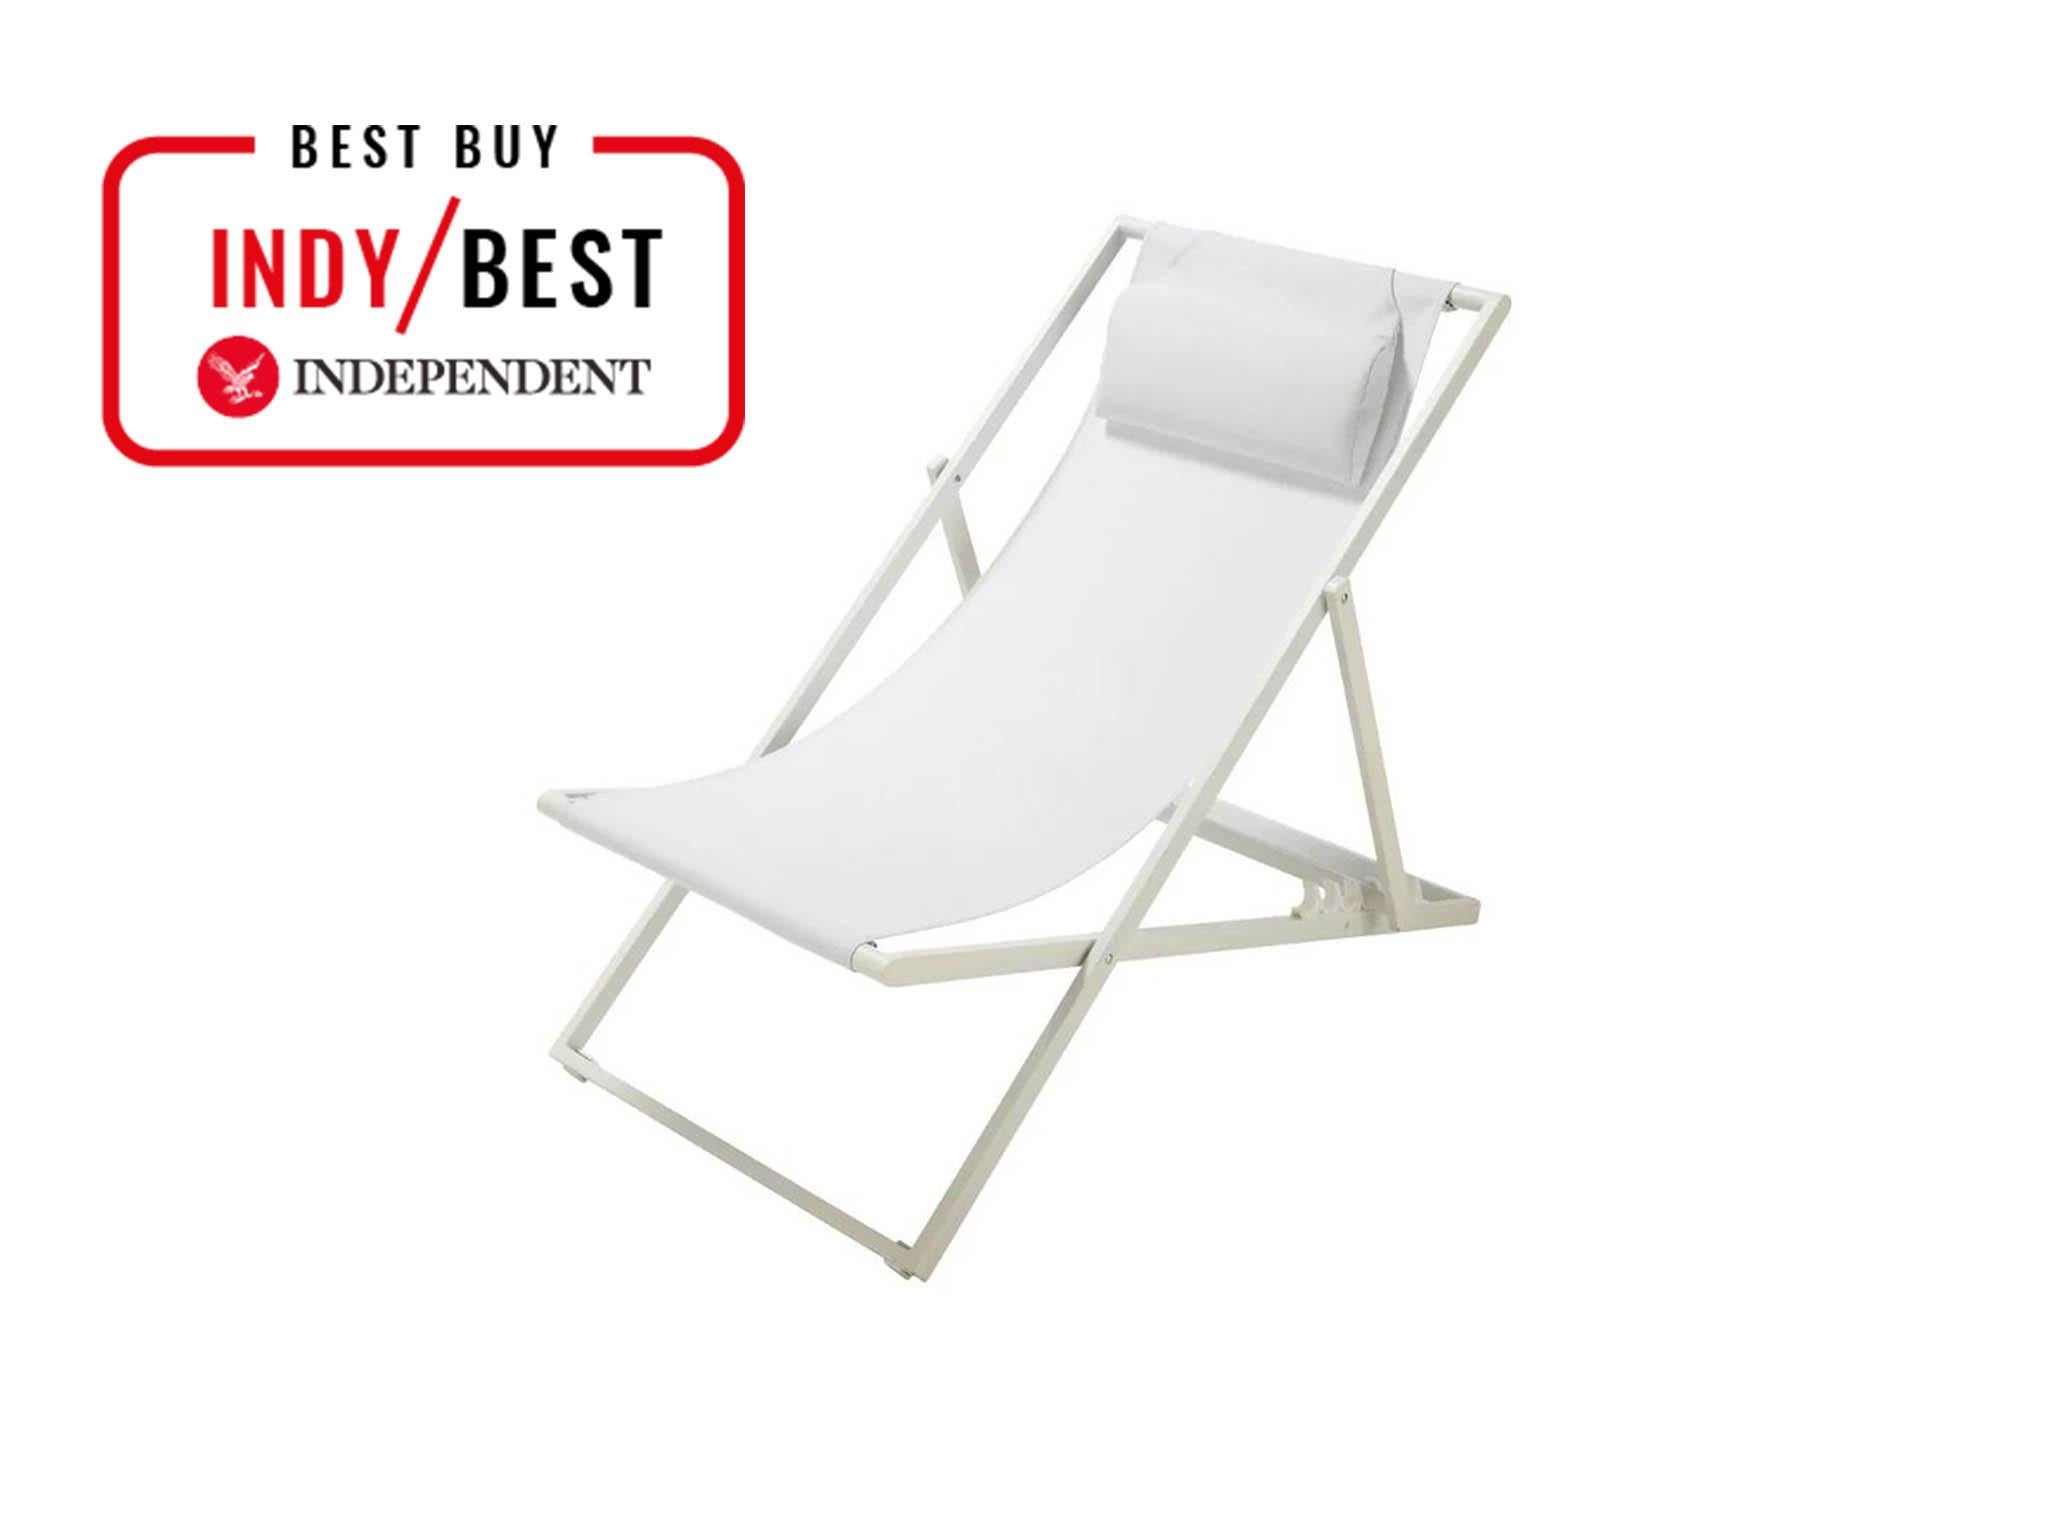 10 Best Deck Chairs The Independent